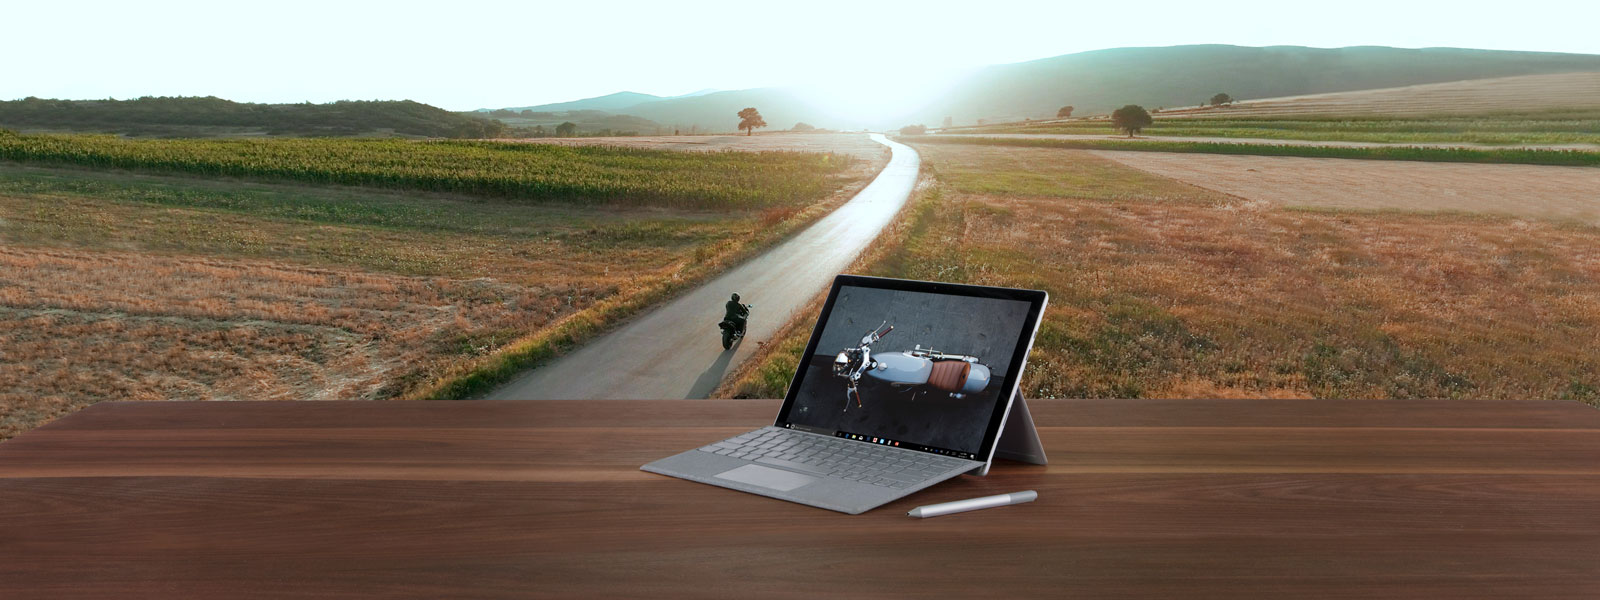 Surface Pro with a motorcycle in the background.